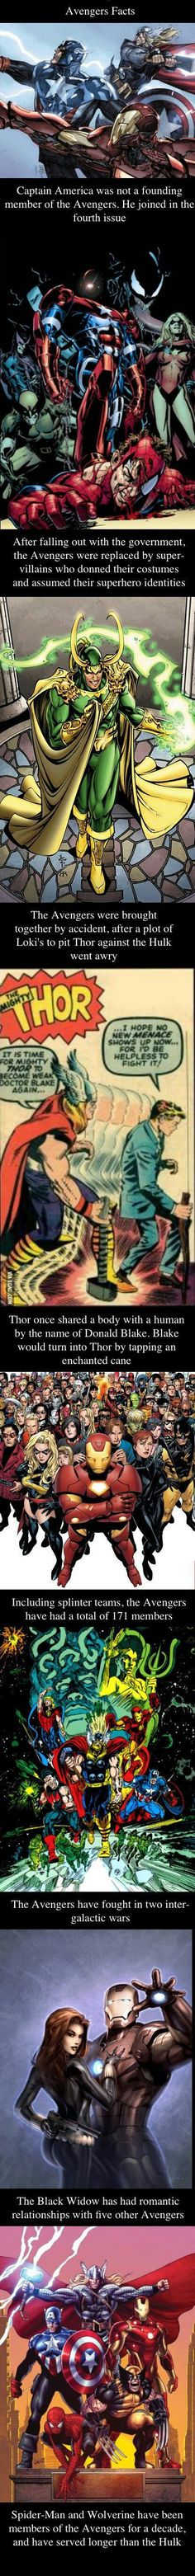 Avengers Facts..